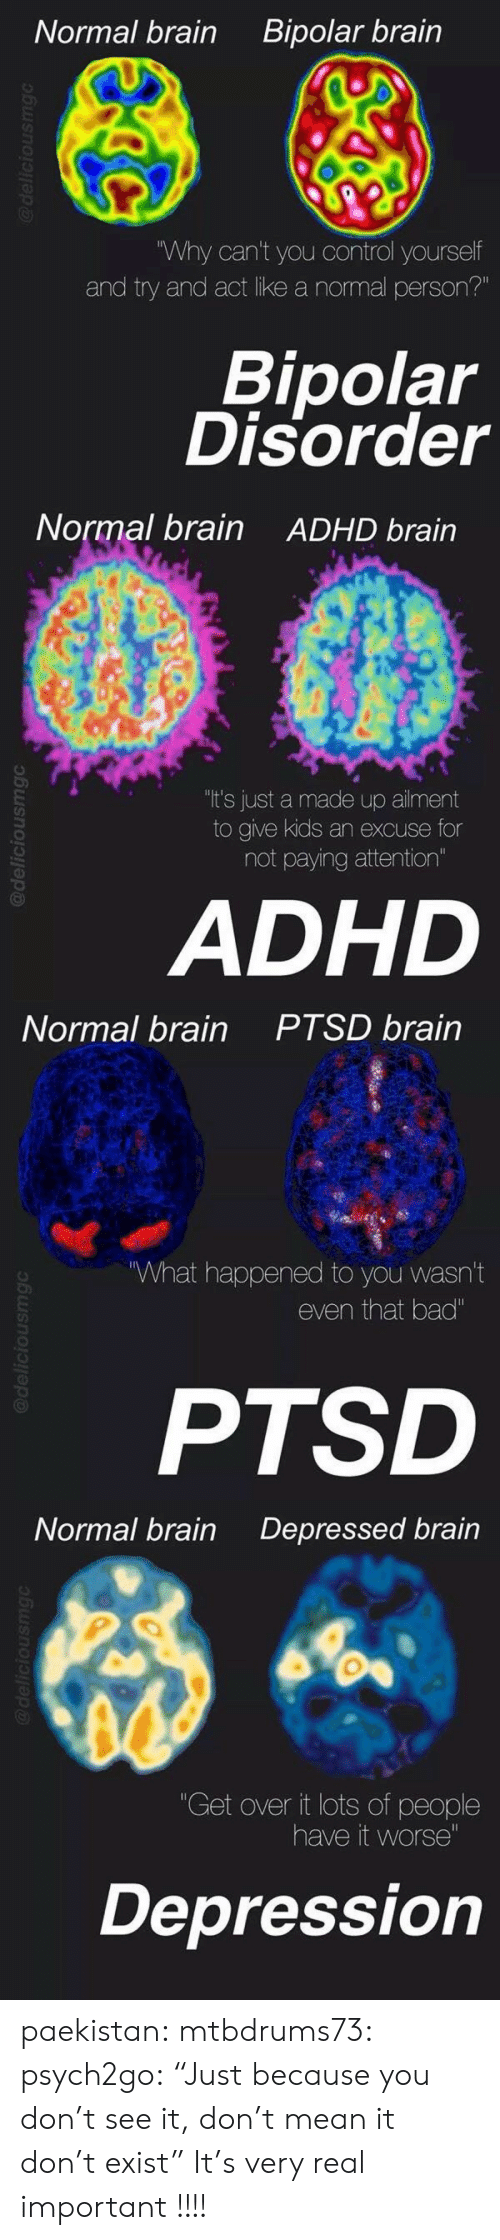 """bipolar disorder: Bipolar brain  Normal brain  """"Why can't you control yourself  and try and act like a normal person?""""  Bipolar  Disorder  @deliciousmgc   Normal brain  ADHD brain  """"It's just a made up ailment  to give kids an excuse for  not paying attention""""  ADHD  @deliciousmgc   PTSD brain  Normal brain  What happened to you wasn't  even that bad""""  PTSD  @deliciousmgC   Normal brain  Depressed brain  """"Get over it lots of people  have it worse""""  Depression  @deliciousmg paekistan:  mtbdrums73:  psych2go:  """"Just because you don't see it, don't mean it don't exist""""  It's very real  important !!!!"""